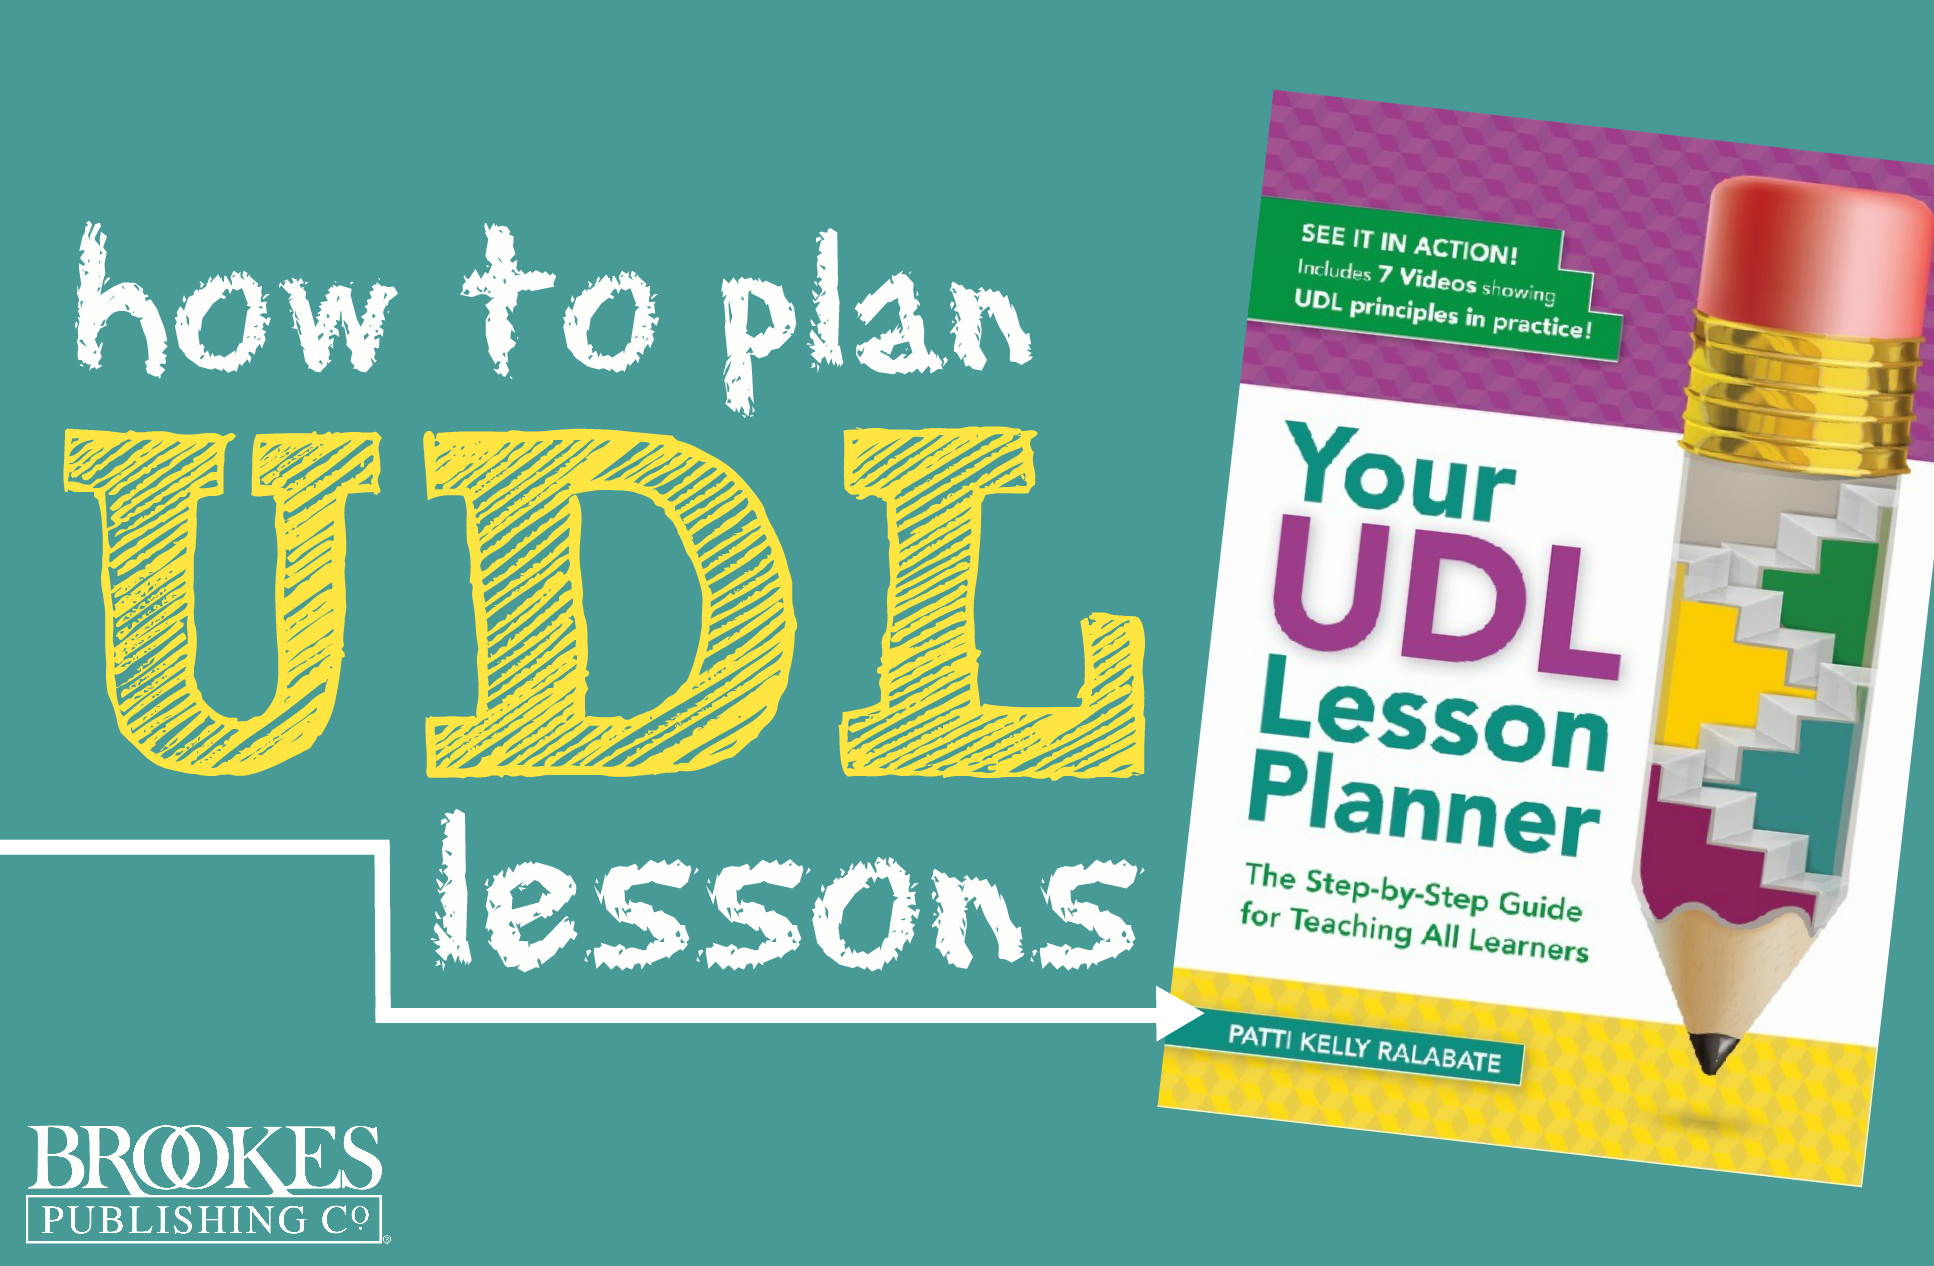 6 Steps To Planning Udl Lessons 3 Teacher Stories The Inclusion Lab